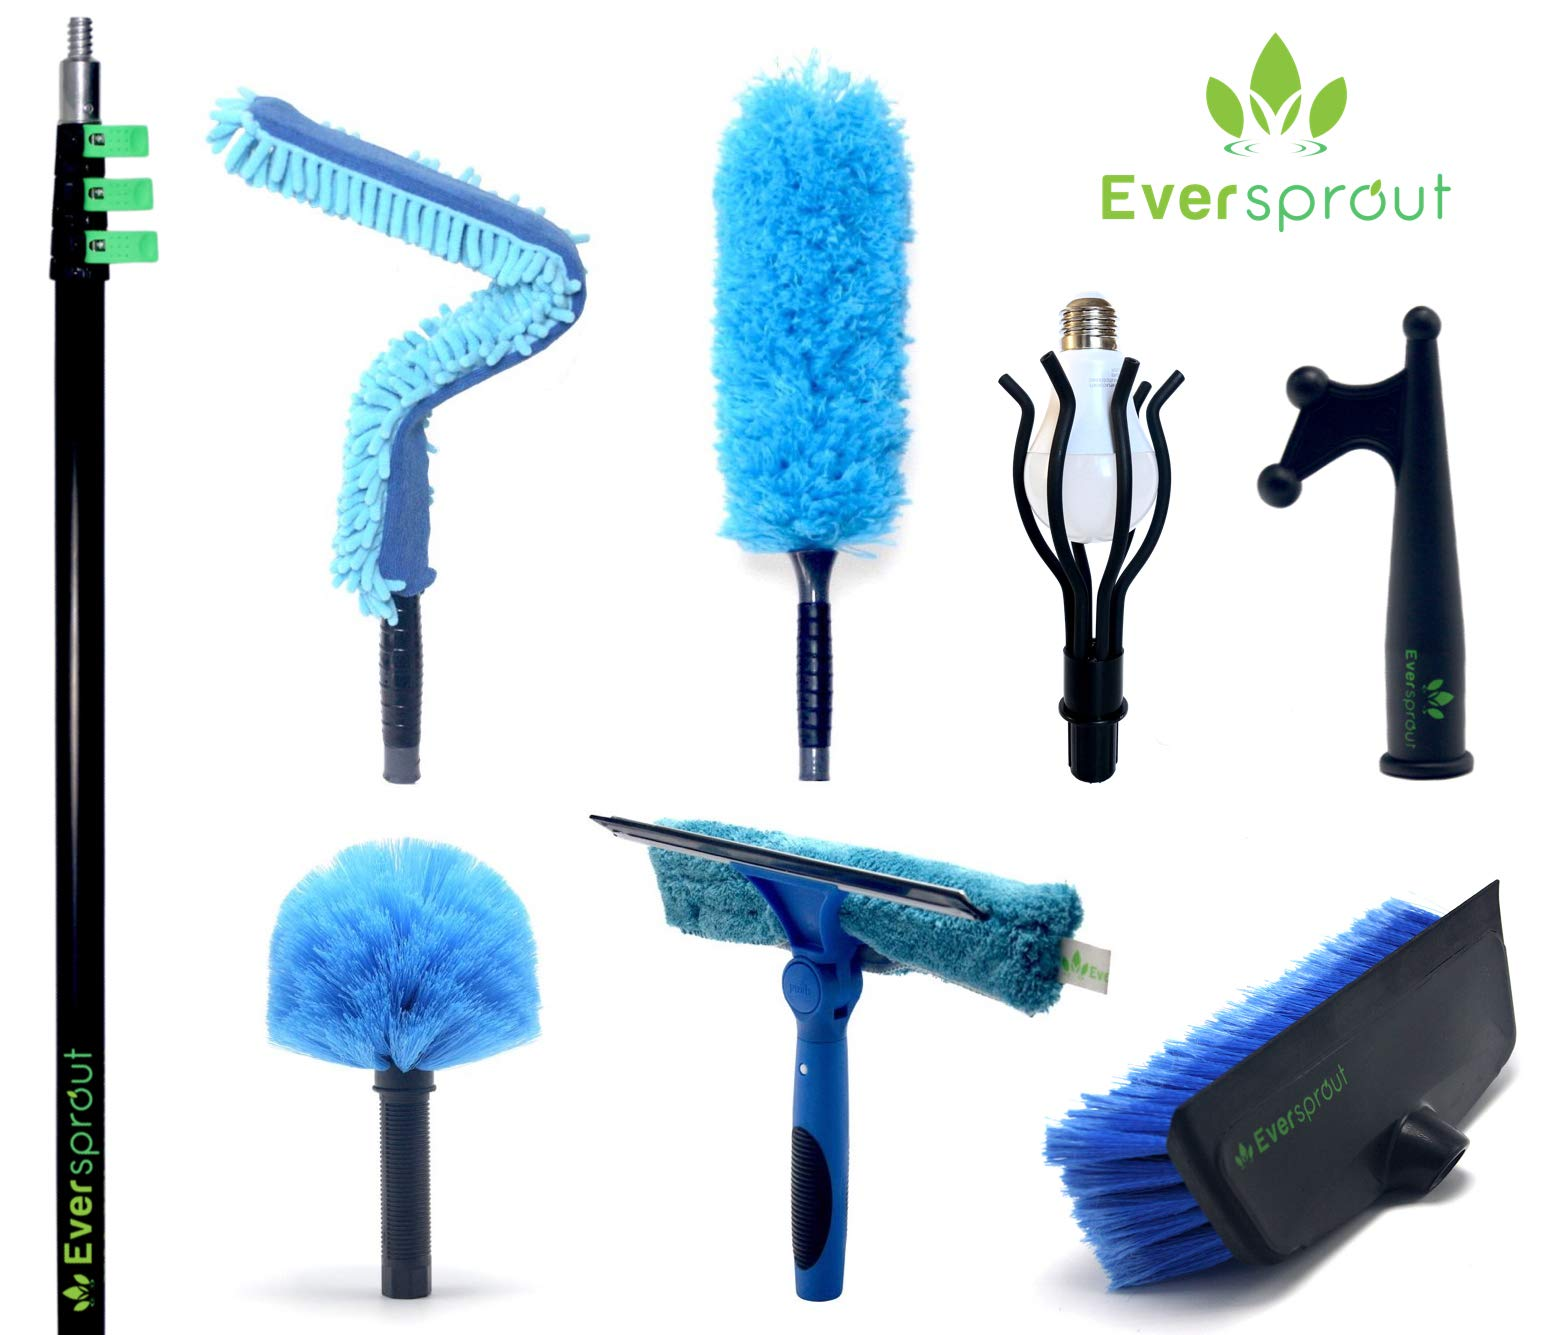 EVERSPROUT Extension Pole Total Kit (30+ Foot Reach)   Telescopic Pole, Scrub Brush, Light Bulb Changer, Utility Hook, Swivel Squeegee, 3X Microfiber Dusters (Cobweb, Flexible Ceiling Fan, Feather) by EVERSPROUT